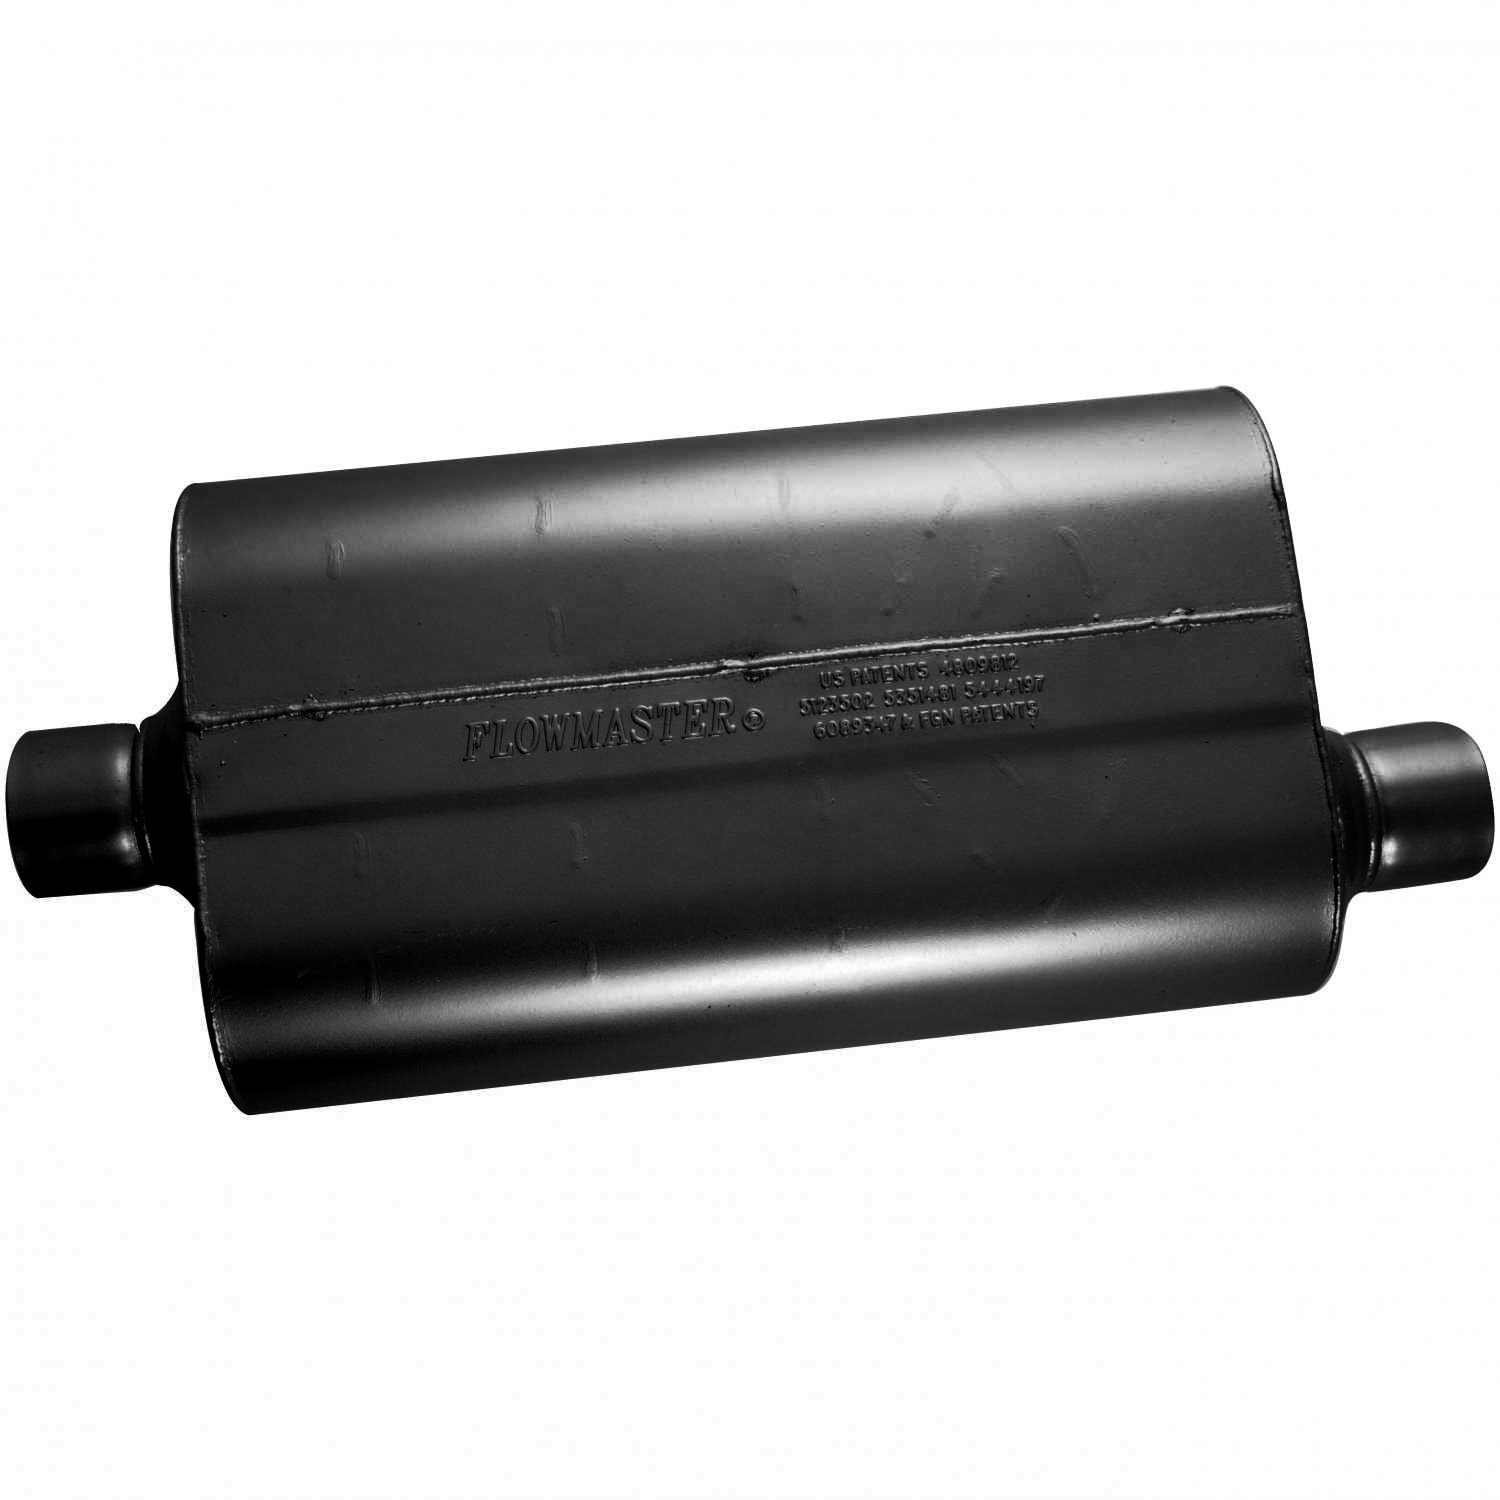 Flowmaster 52557 Super 50 Muffler - 2.50 Center IN / 2.50 Offset OUT - Moderate Sound by Flowmaster (Image #2)